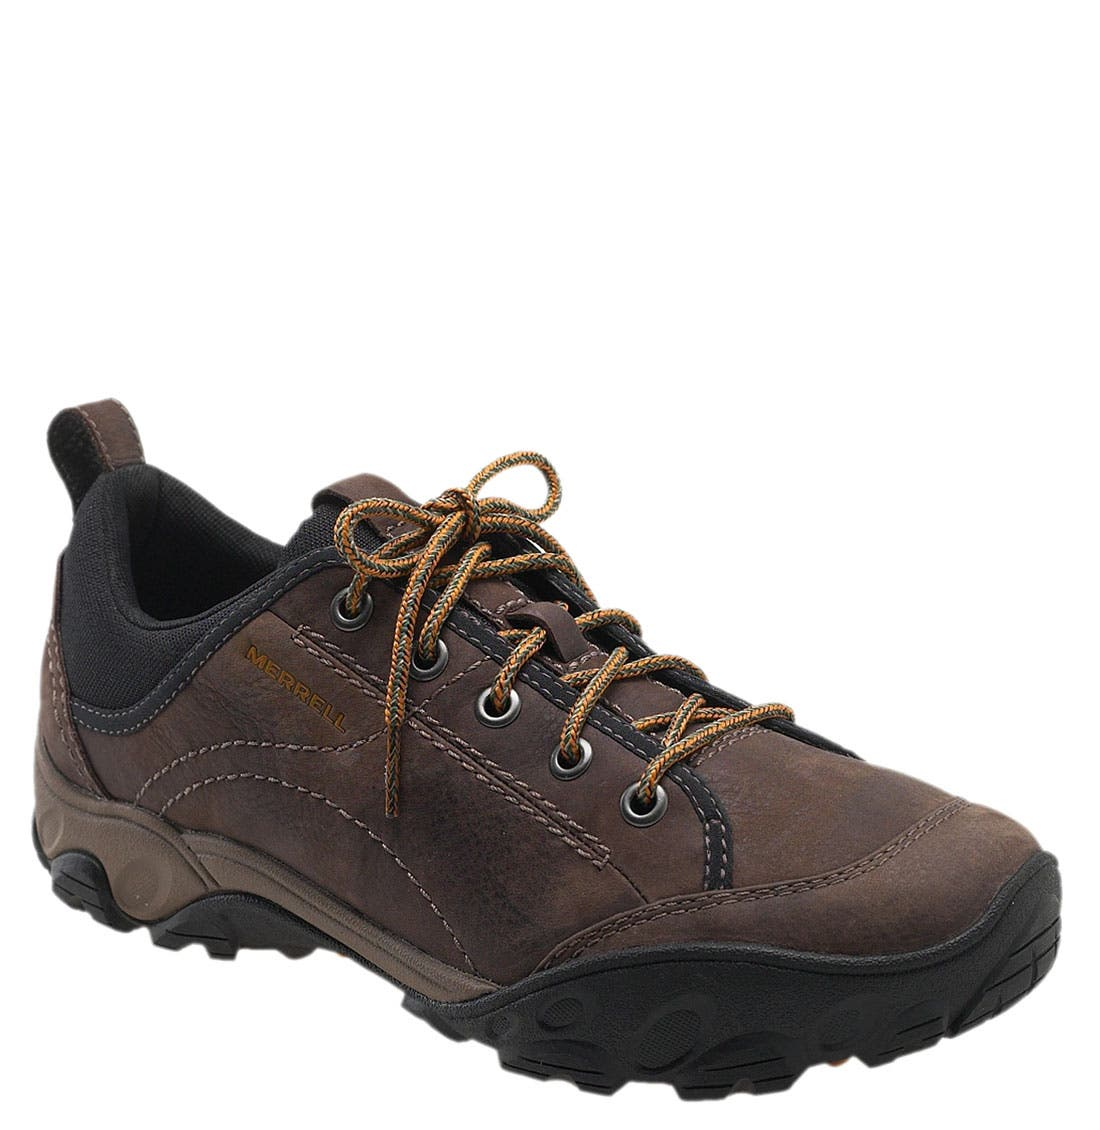 Main Image - Merrell 'Sight' Shoe (Men) (Online Only)